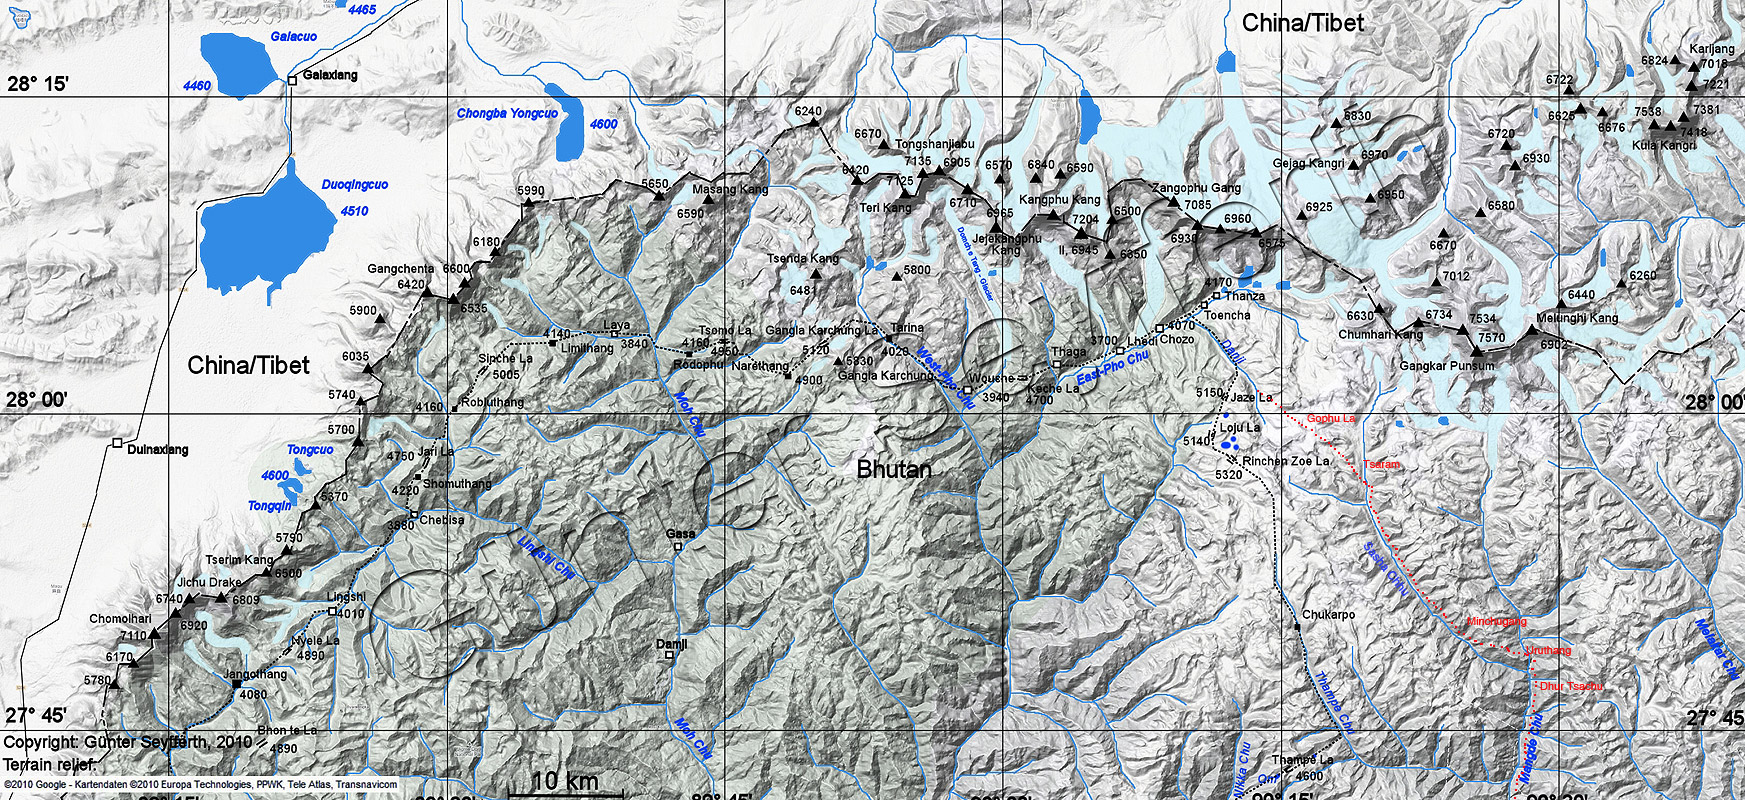 This map, courtesy of Günter Seyfferth, shows the entirety of the Snowman trek. I have appended the alternative route route from Thanza towards Bumthang via the Gophu La in red. Place locations are approximate!